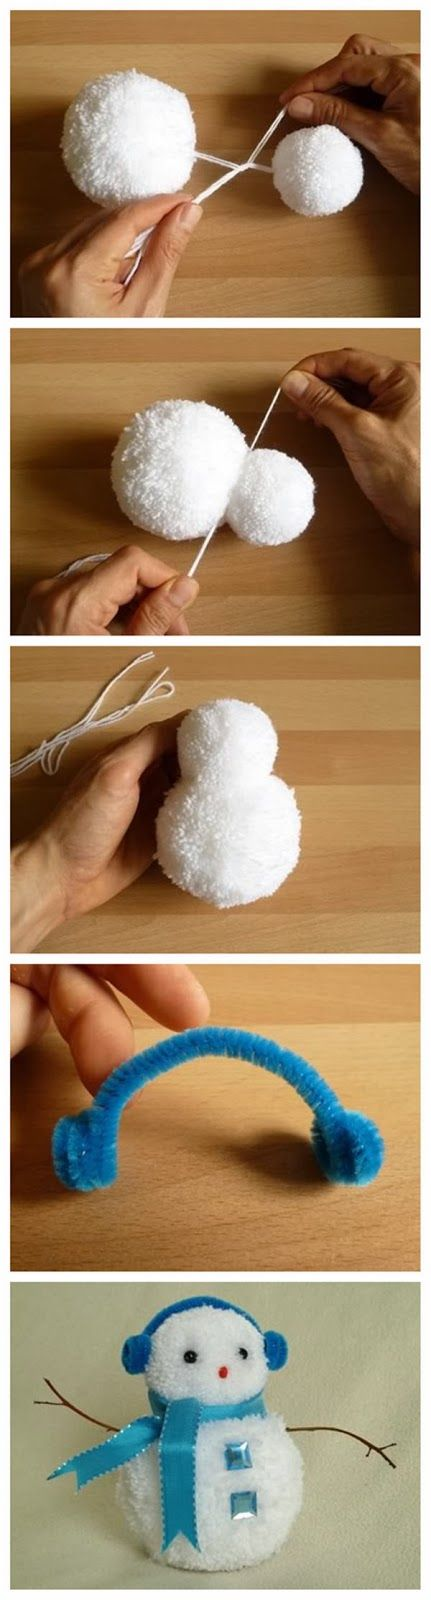 Pom Pom Snowman Craft | CostMad do not sell this idea/product. Please visit our blog for more funky ideas